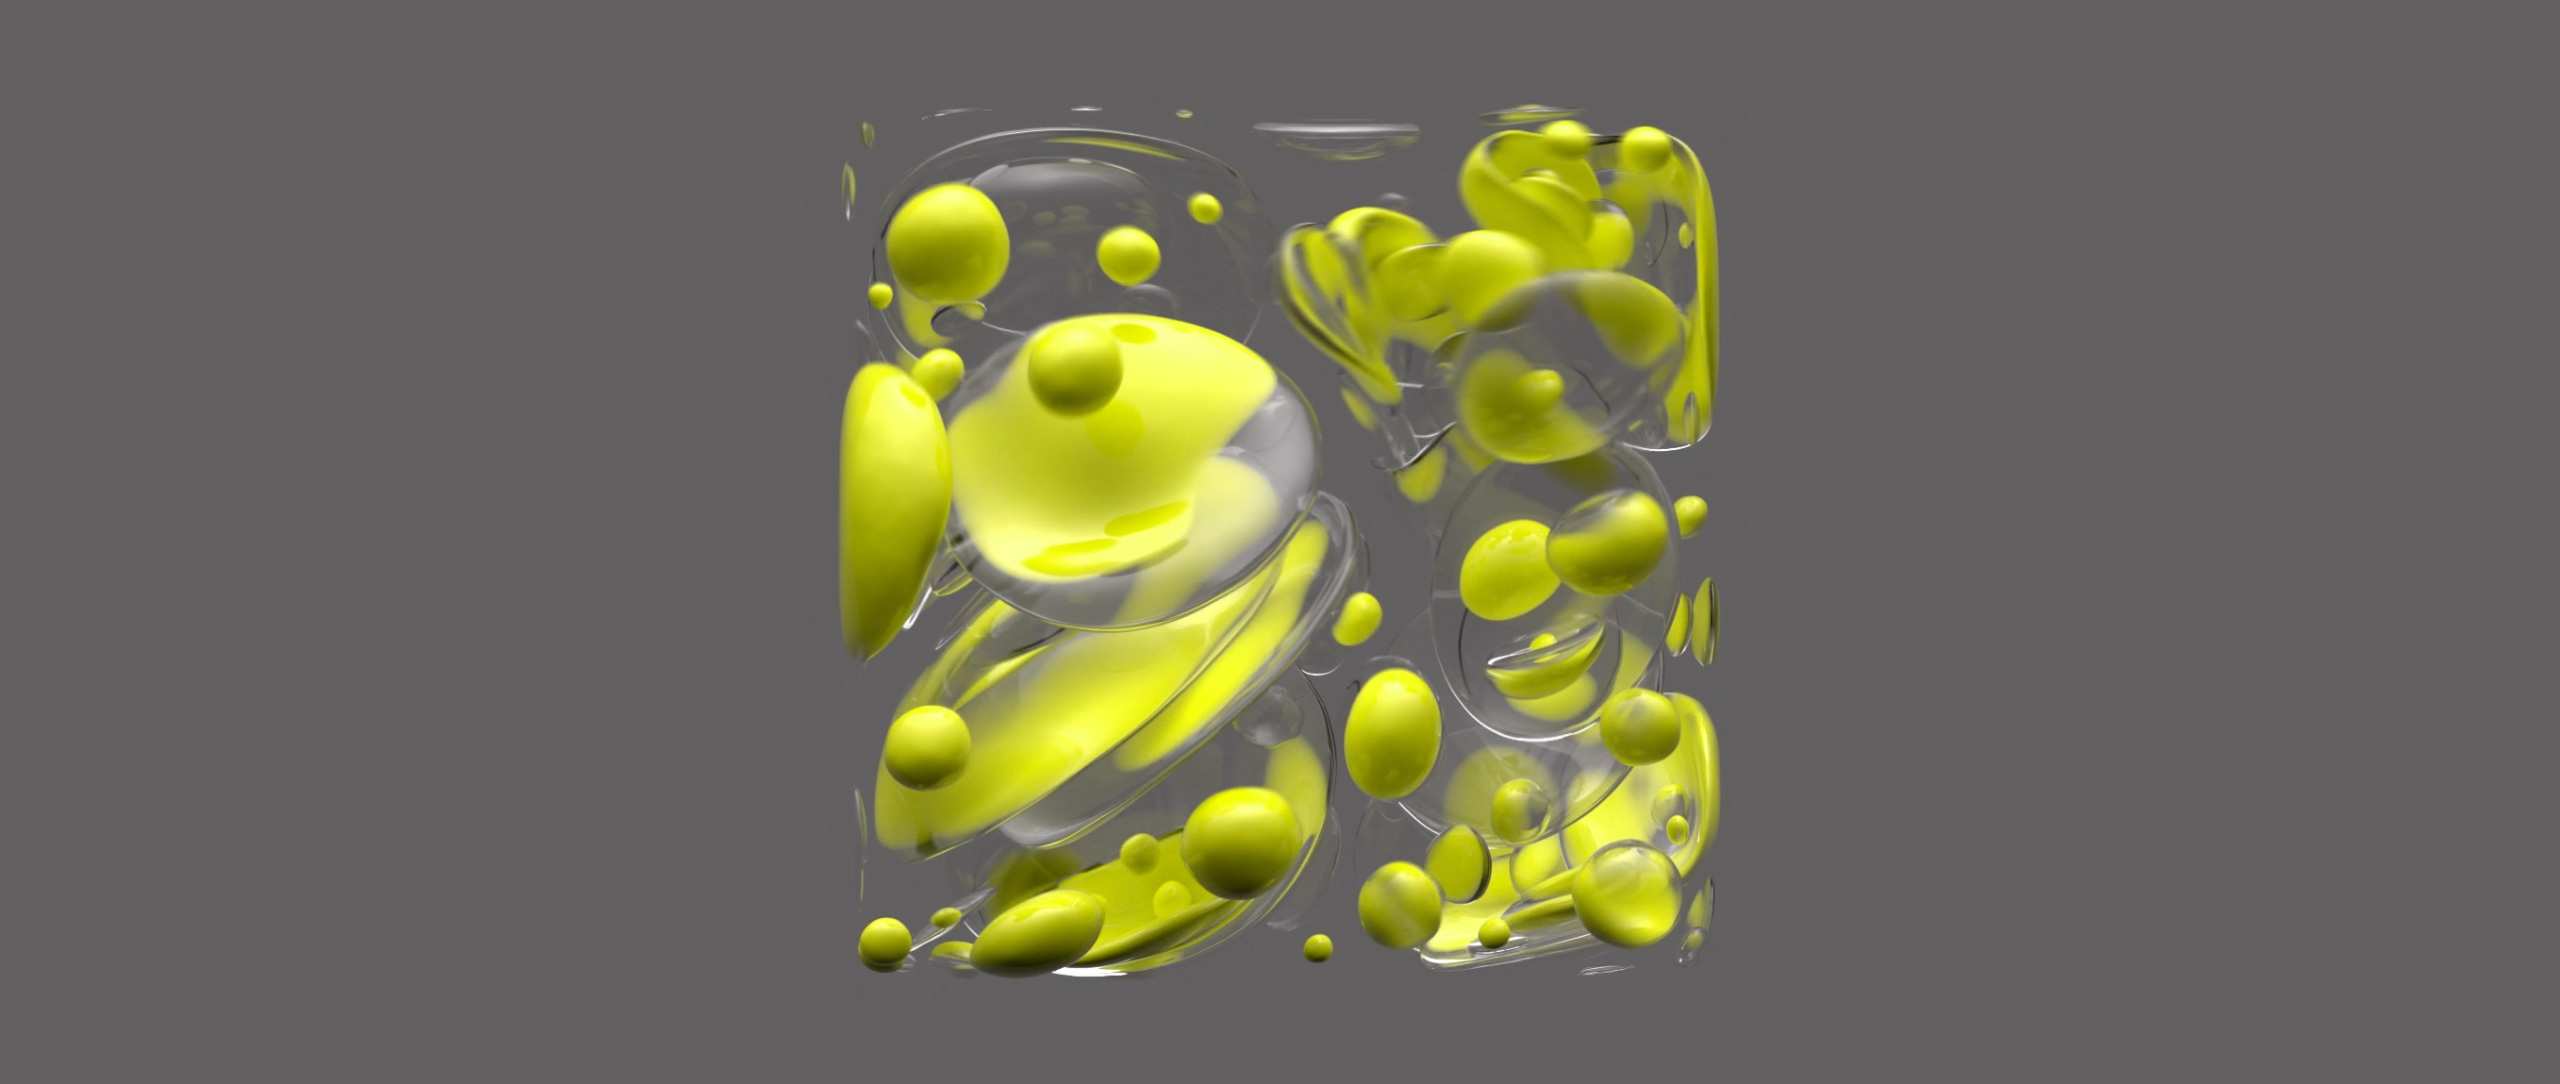 Video artwork showing yellow blobs move, merge, split, shrink and enlarge inside a clear cube.